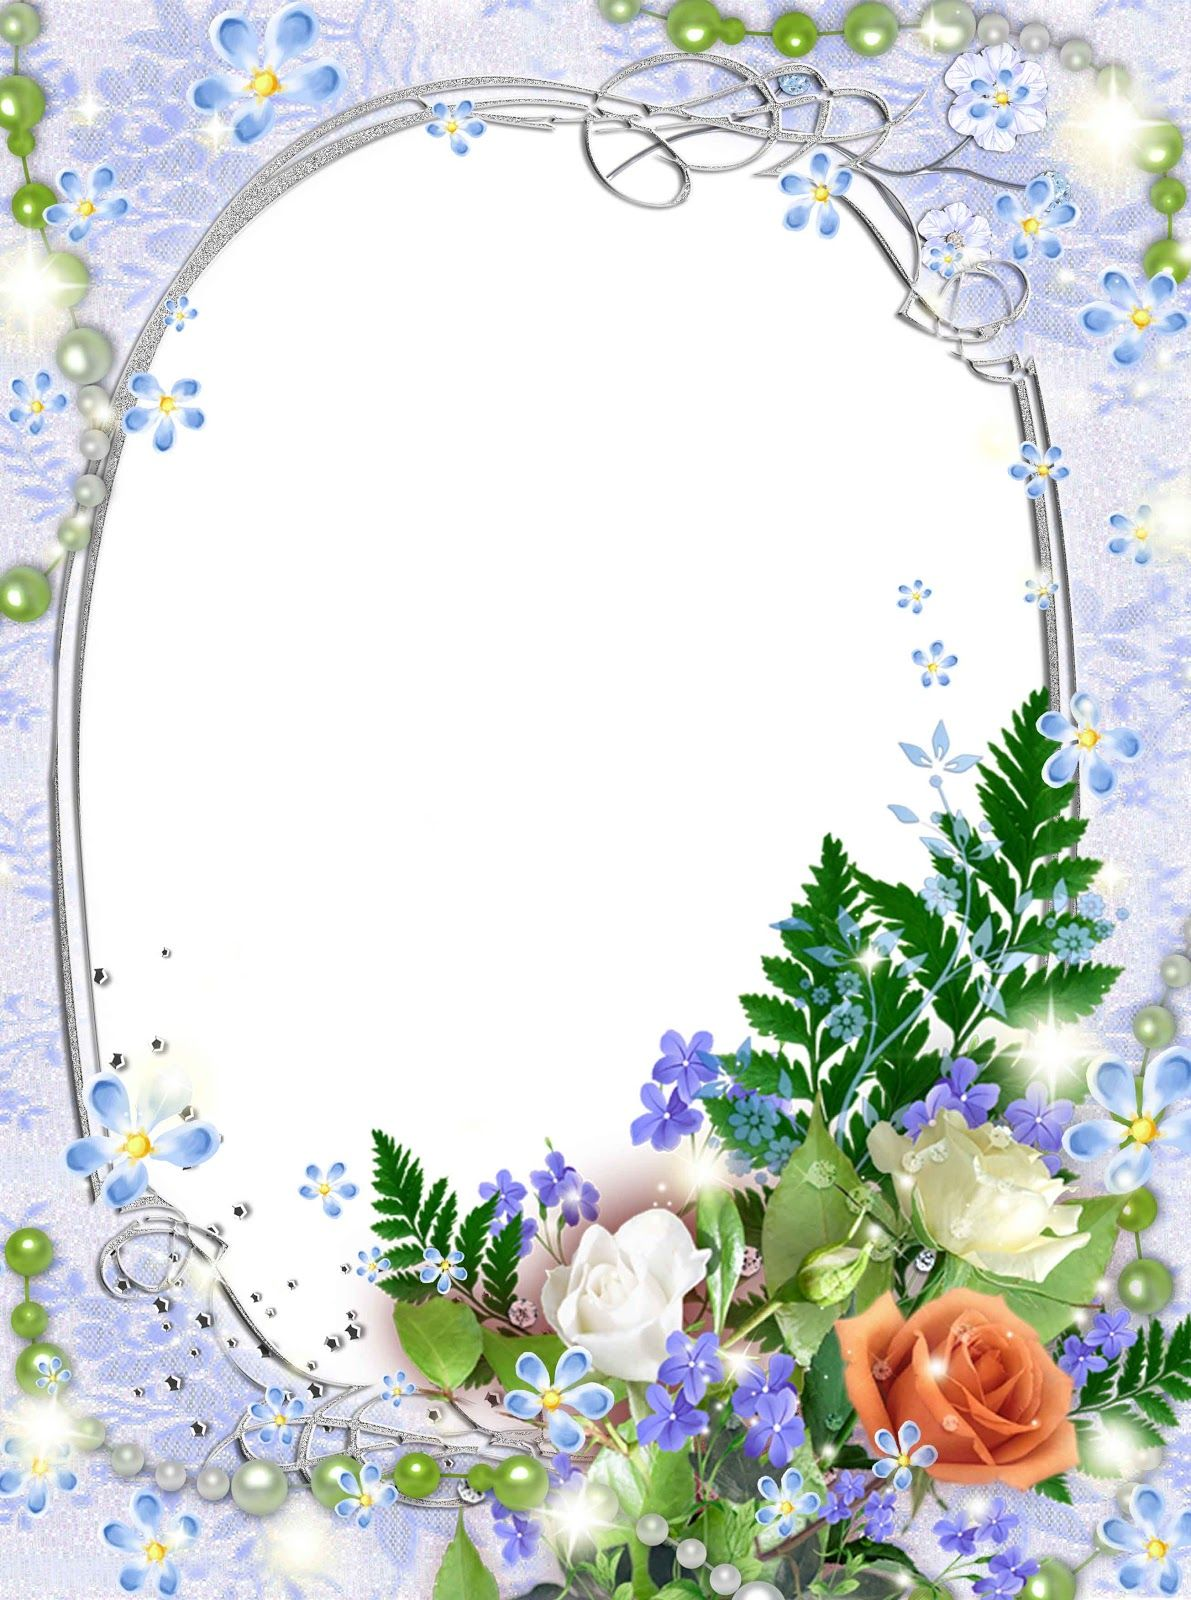 flower-photo-frames-psd-free-download-3 | FRAMES and CORNERS 1 ...